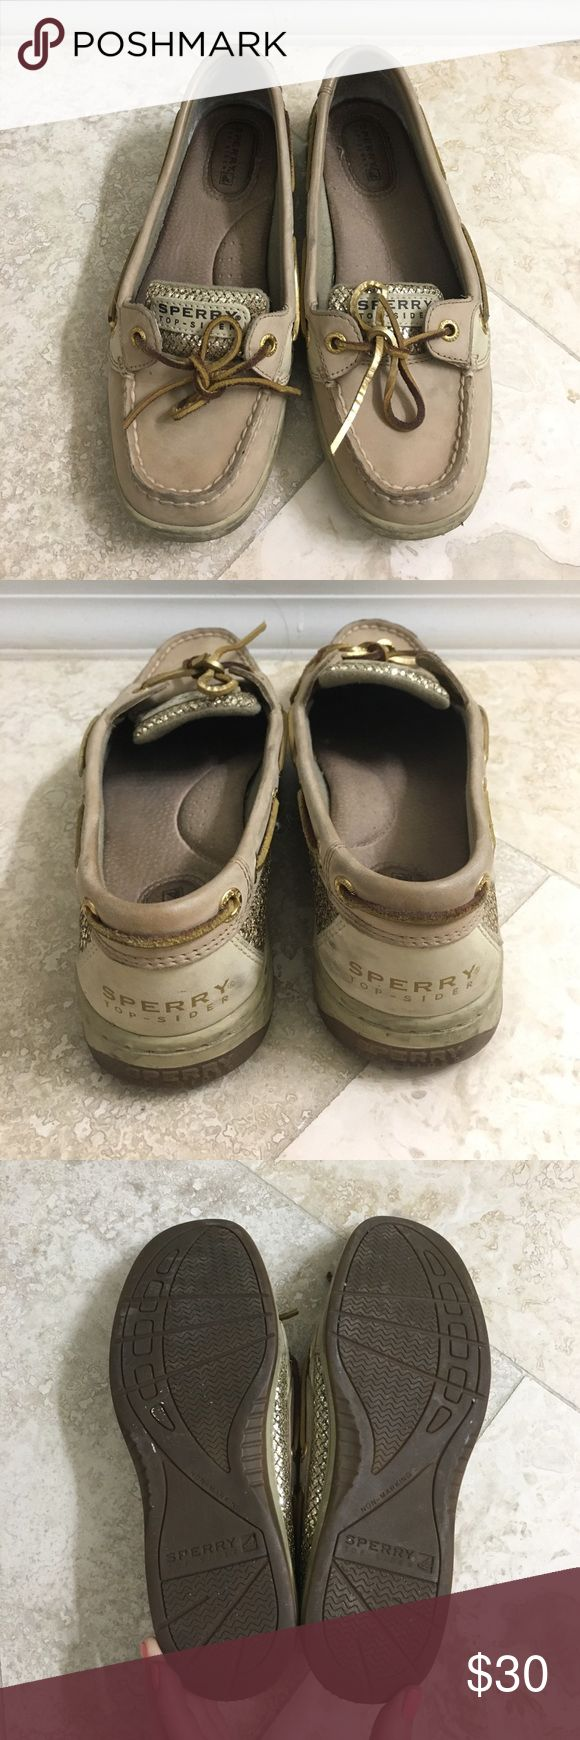 Sperry Top-Sider Angelfish Gold Sequin Boat Shoe Used pair of super cute Sperry boat shoes in size 6.5. Just the right amount of bling for an everyday look. Great shoe for spring/summer! Sperry Top-Sider Shoes Flats & Loafers